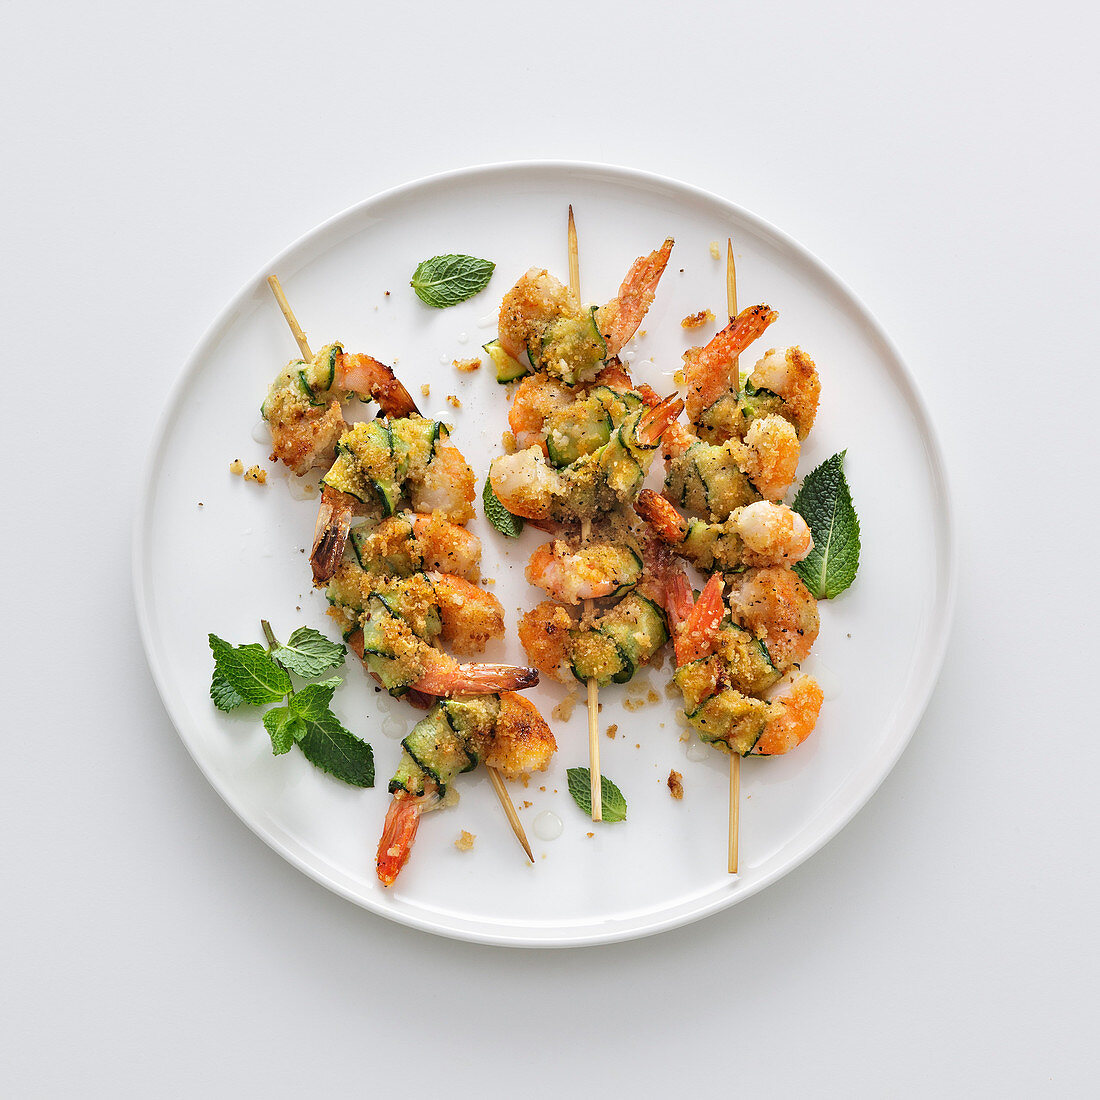 Prawn and courgette skewers with spiced breadcrumbs